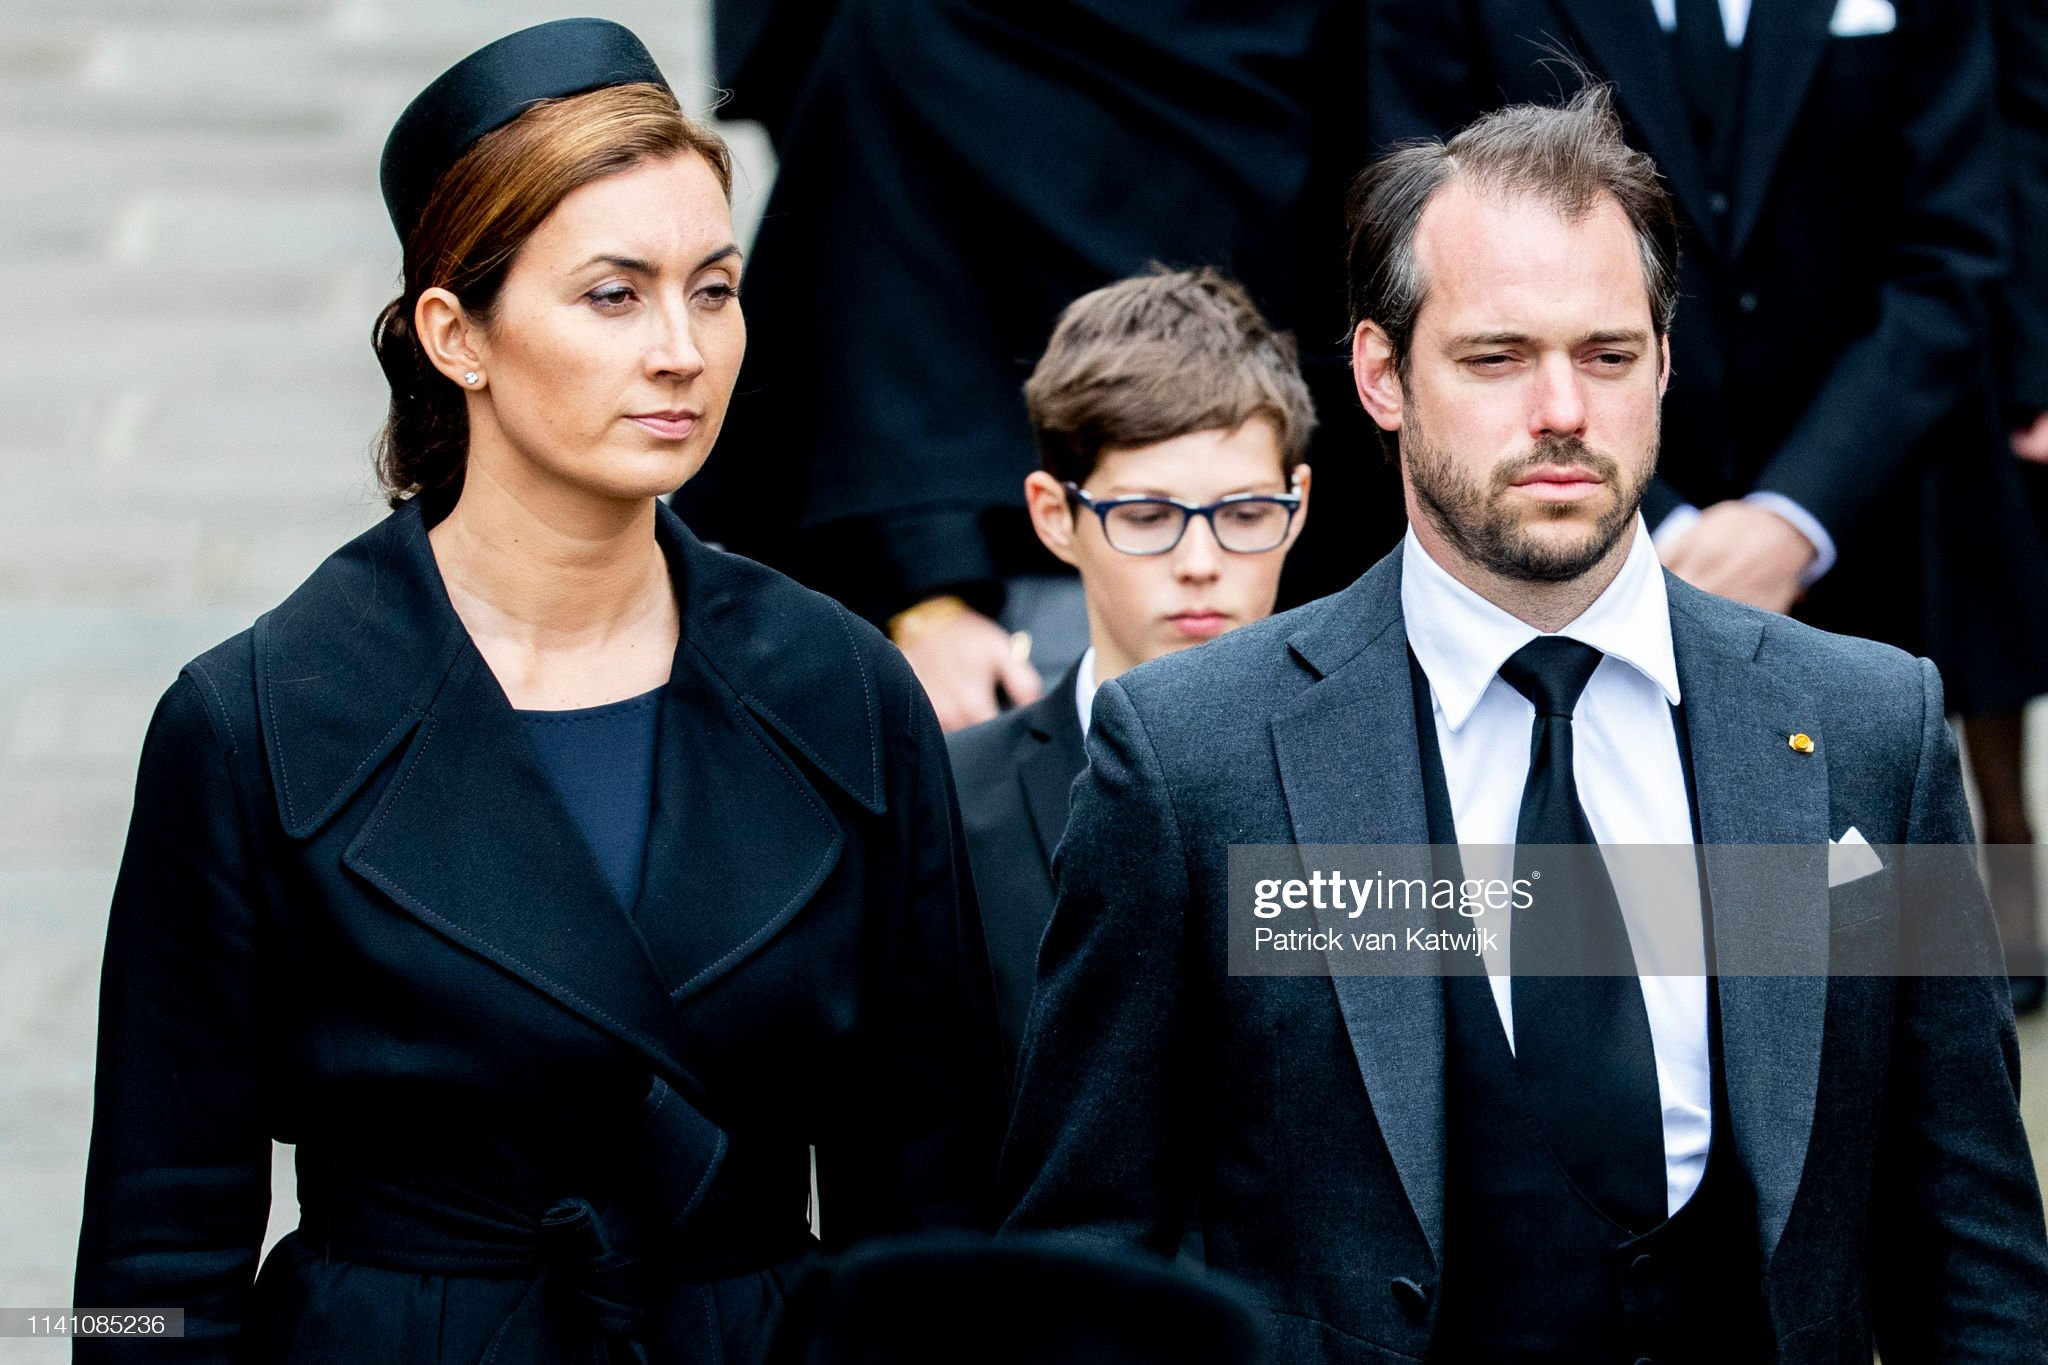 Похороны Великого Герцога Жана https://media.gettyimages.com/photos/prince-felix-of-luxembourg-and-princess-claire-of-luxembourg-attend-picture-id1141085236?s=2048x2048